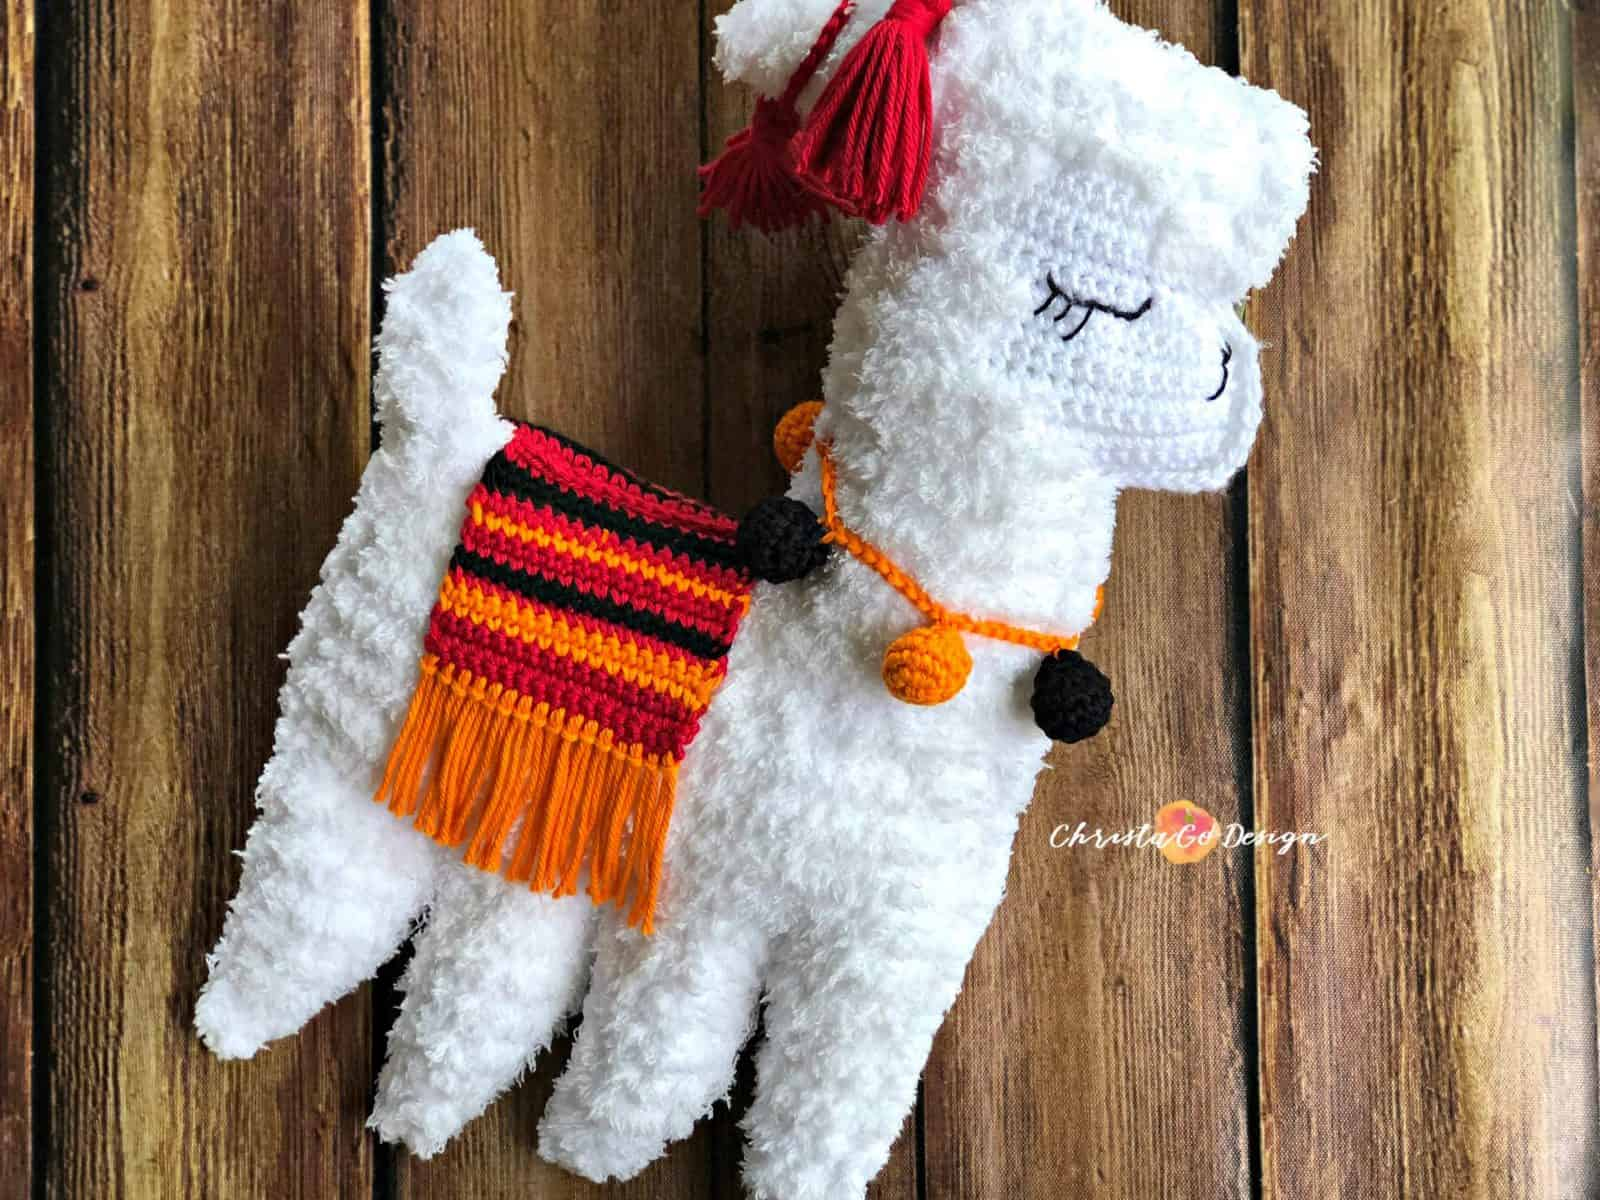 Crocheting with Fuzzy Yarn Tips + Crochet Llama